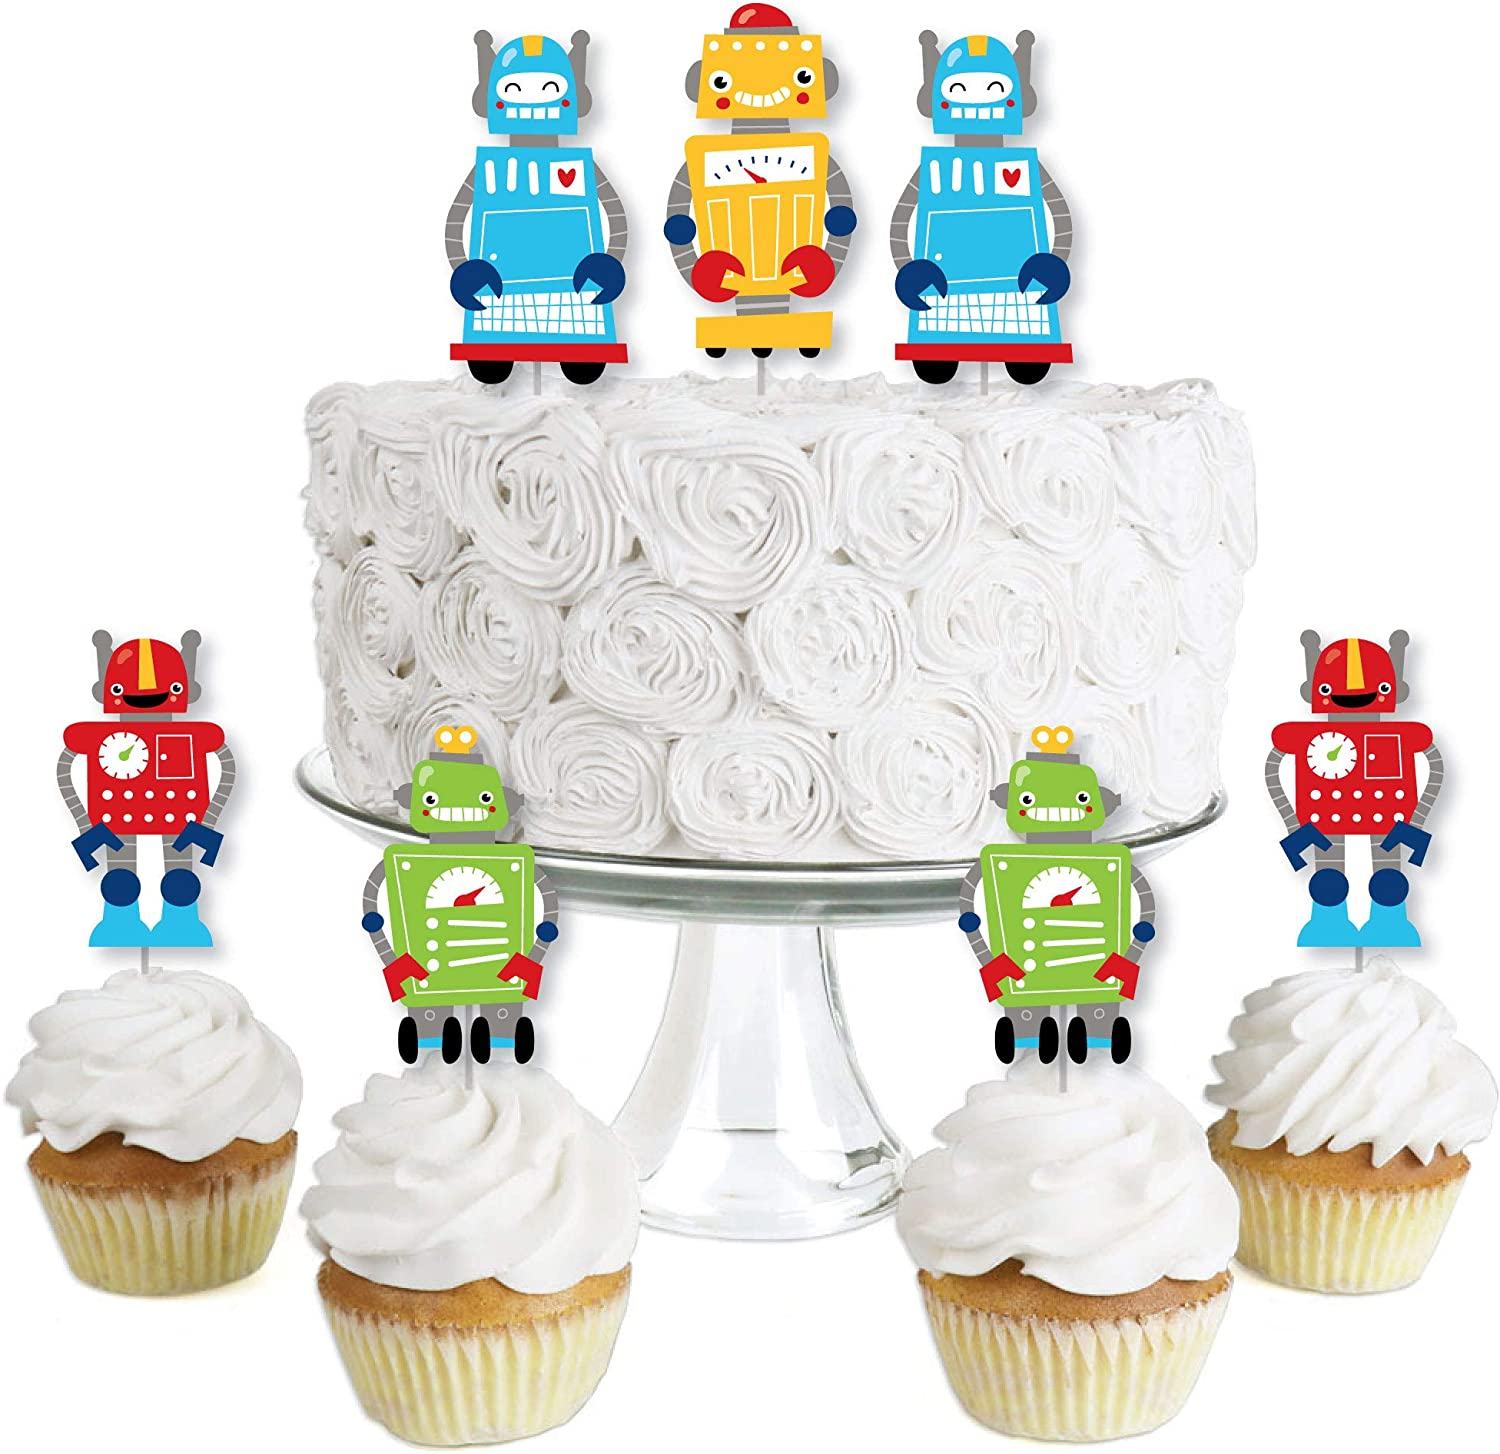 Big Dot of Happiness Gear Up Robots - Dessert Cupcake Toppers - Birthday Party or Baby Shower Clear Treat Picks - Set of 24